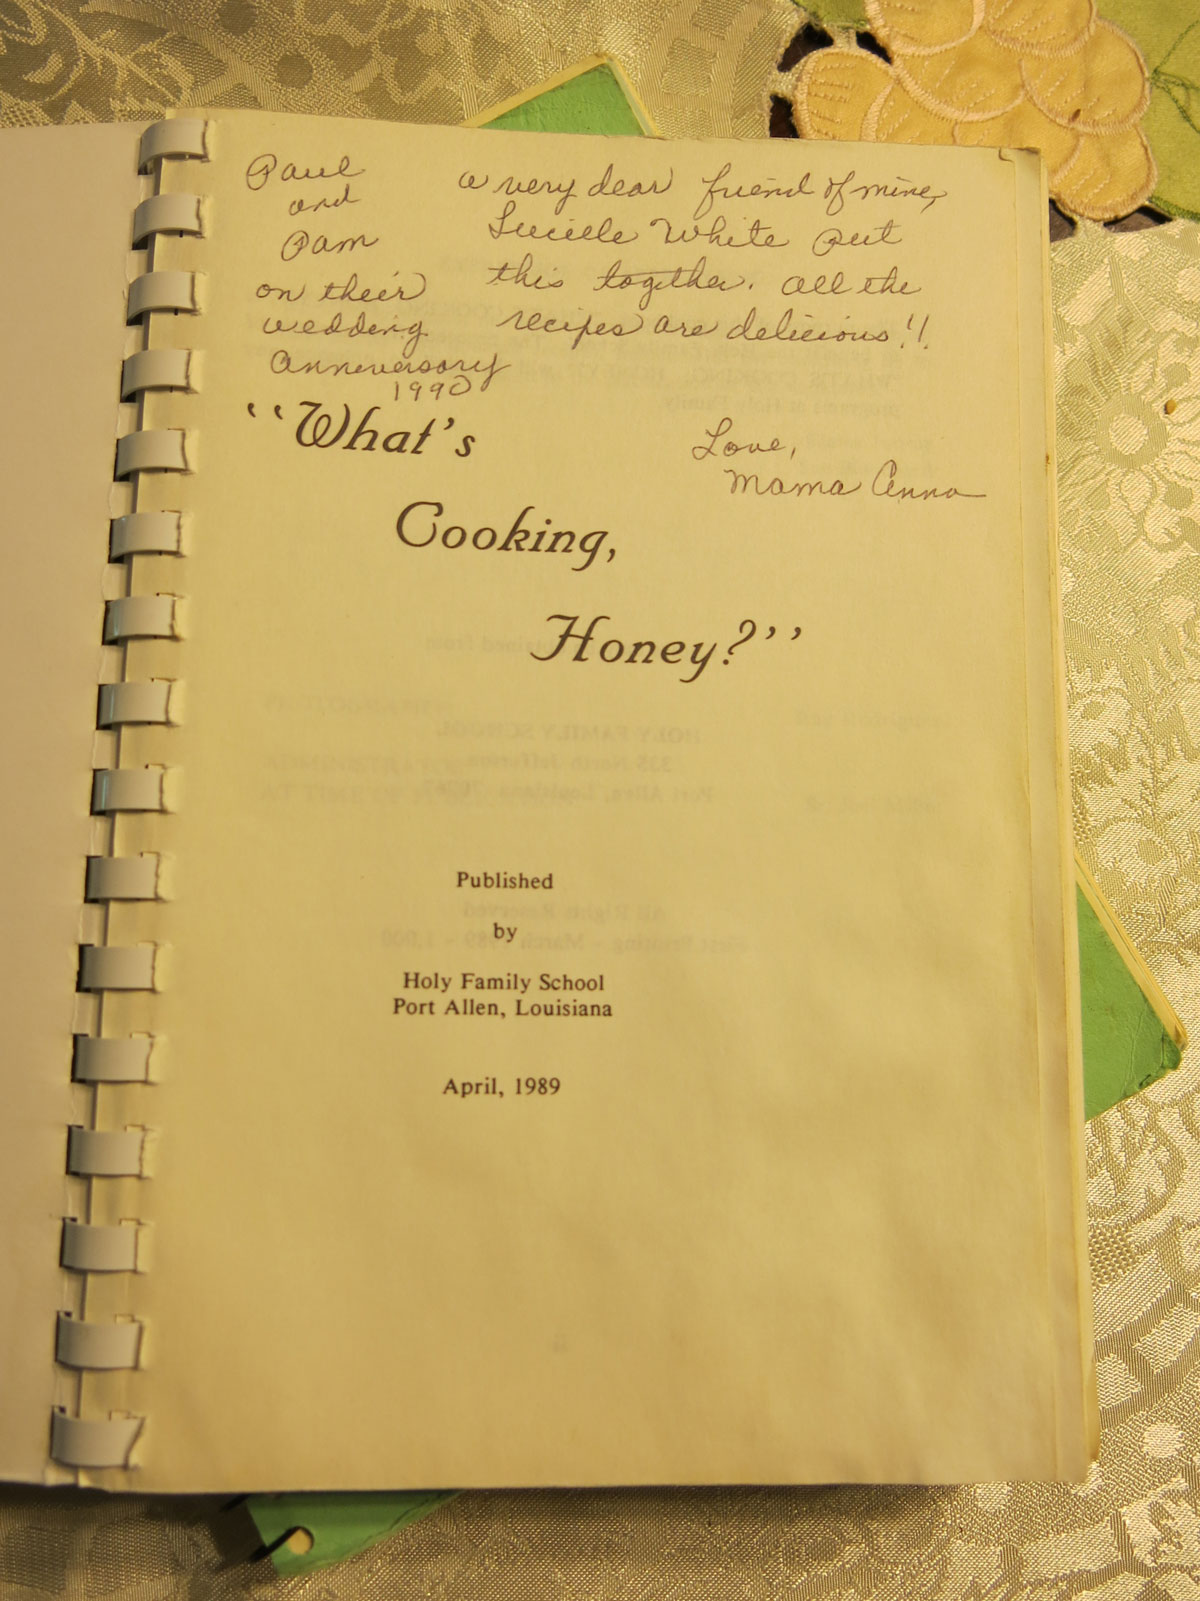 Inscription from my mother, Anna Nauta, in a  community fundraising cookbook that included some of her recipes.